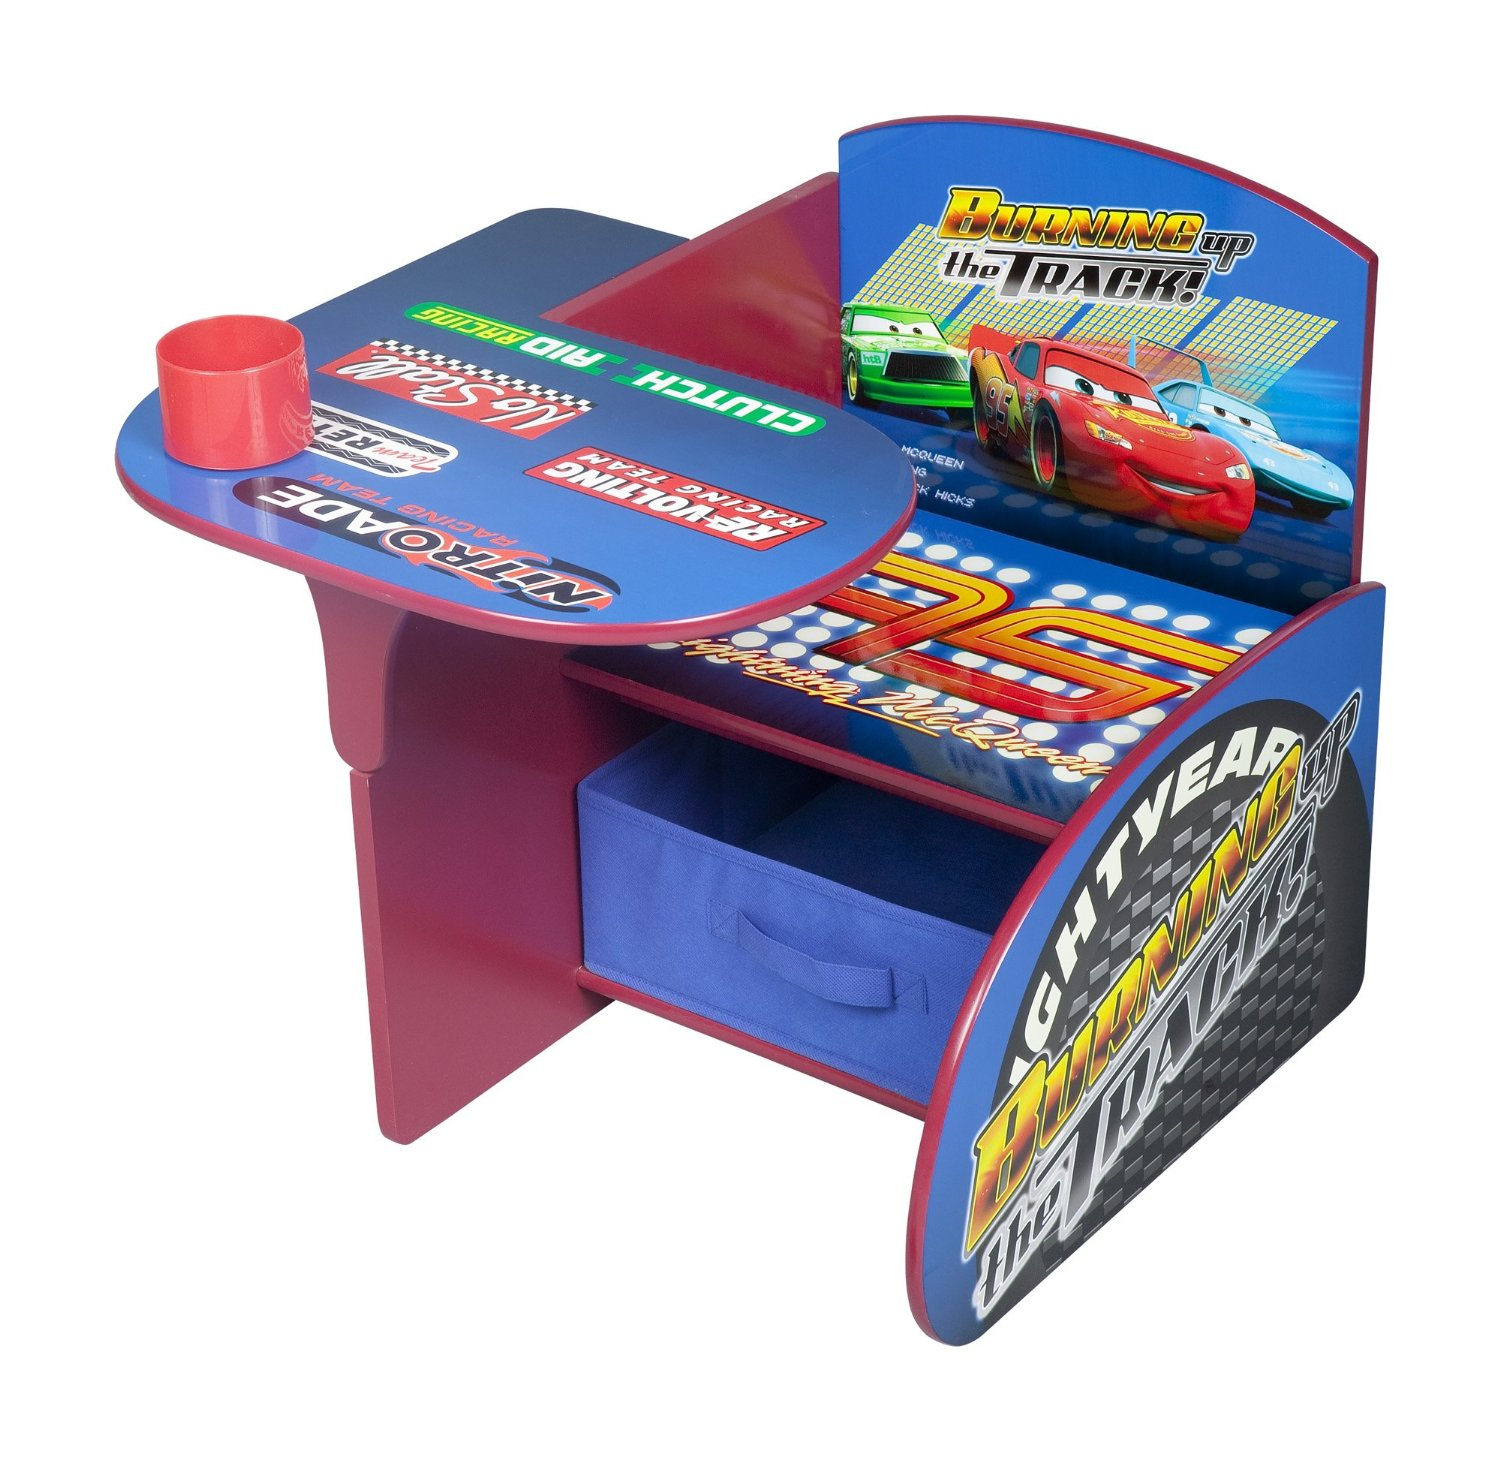 Delta Children Chair Desk With Storage Bin Various Characters Including Mickey Mouse Princesore Only 29 Shipped